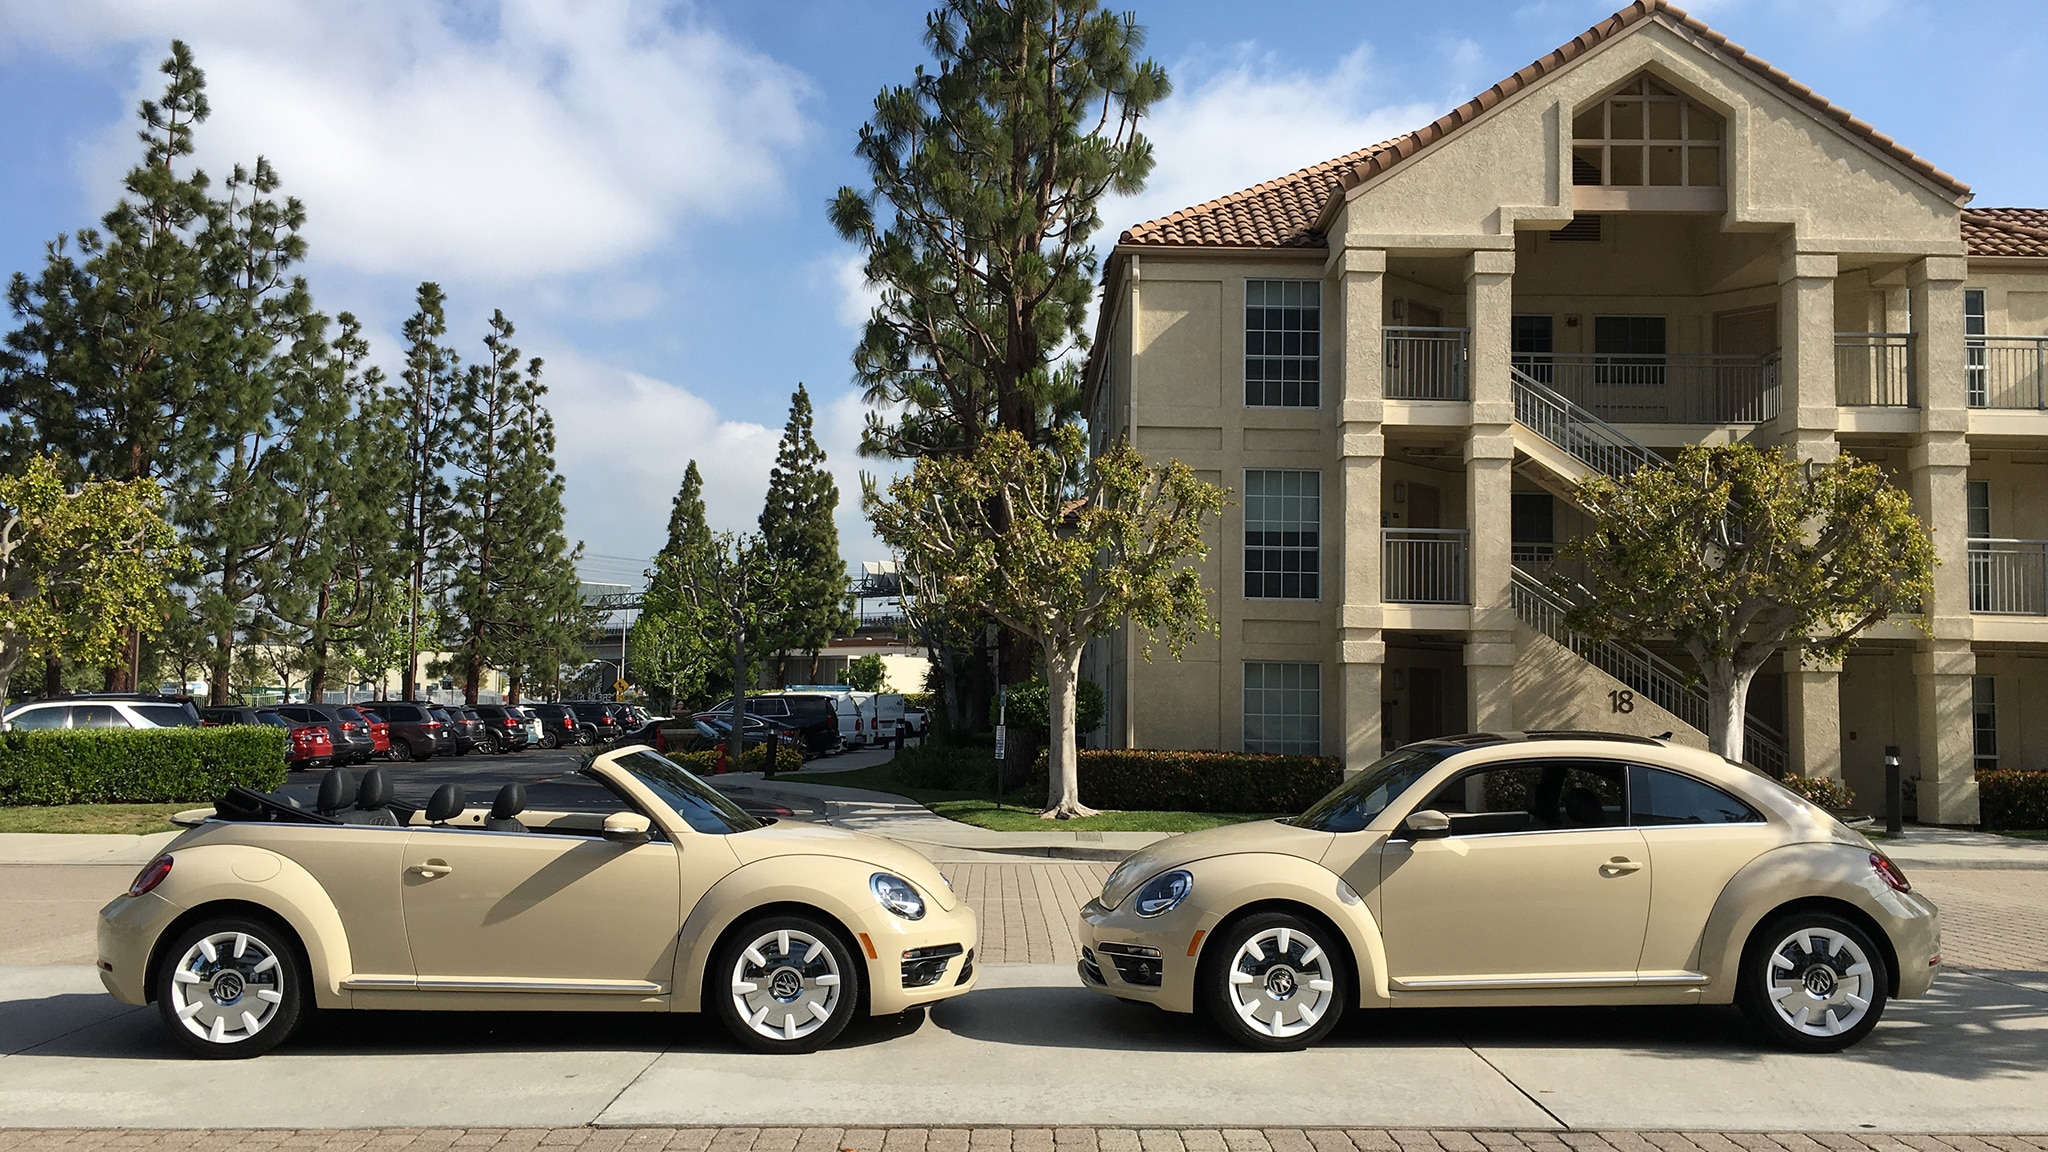 2019 Vw Beetle Final Edition Review Saying Bye Bye To The Bug